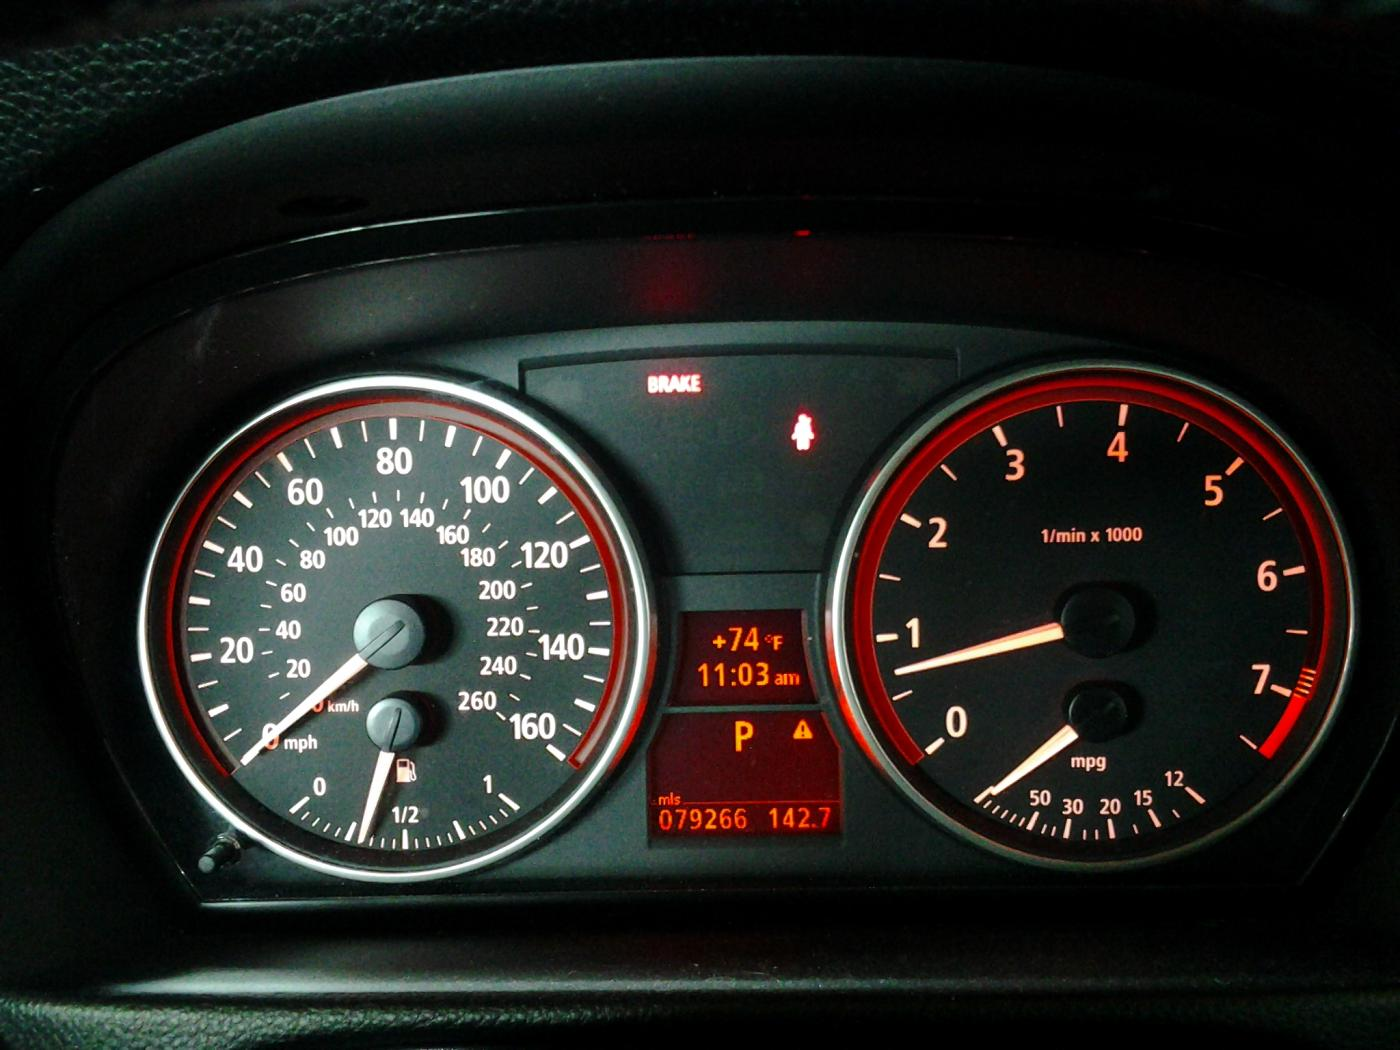 Bmw 1 Series Handbrake Warning Light Reset